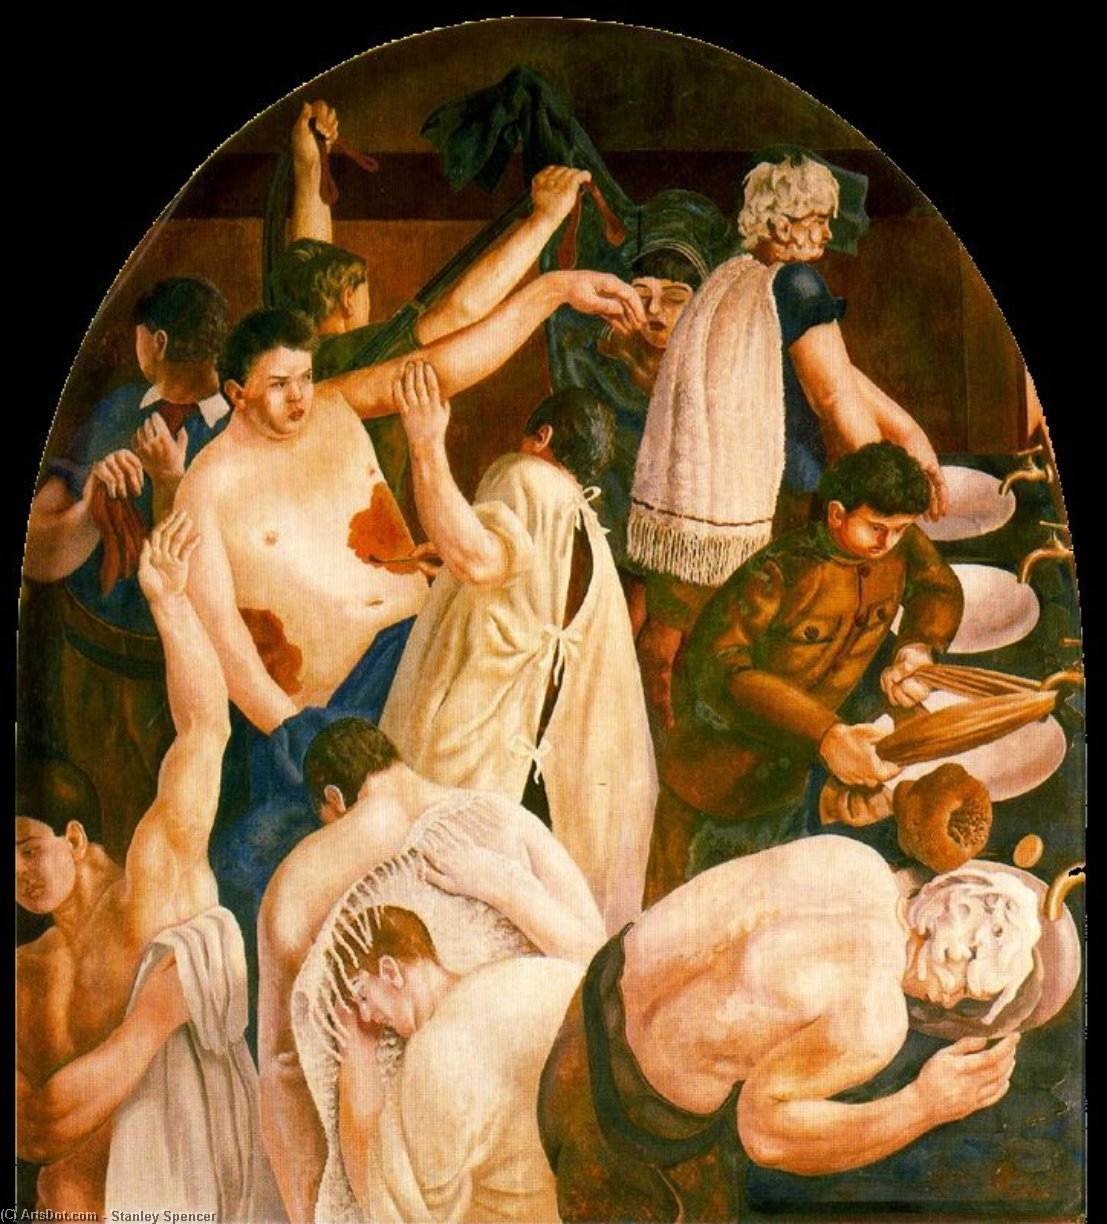 Ablutions de Stanley Spencer (1891-1959, United Kingdom) | Reproductions De Qualité Musée | ArtsDot.com